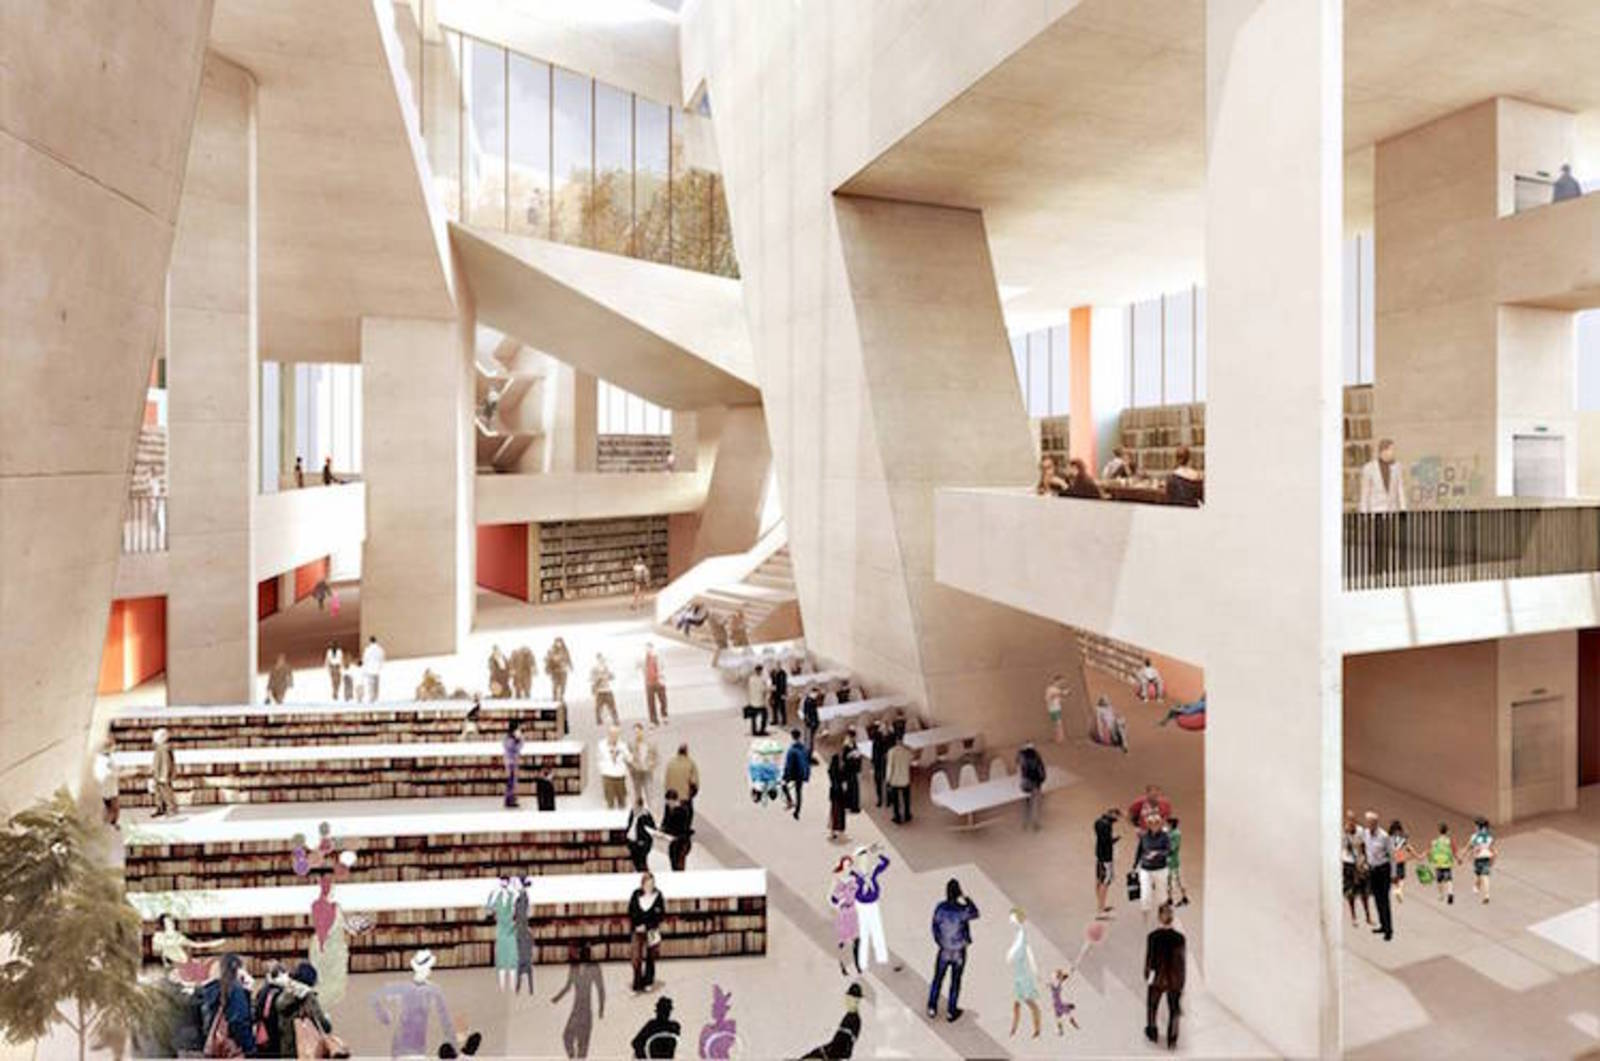 Early Designs Unveiled For New City Library On Dublin